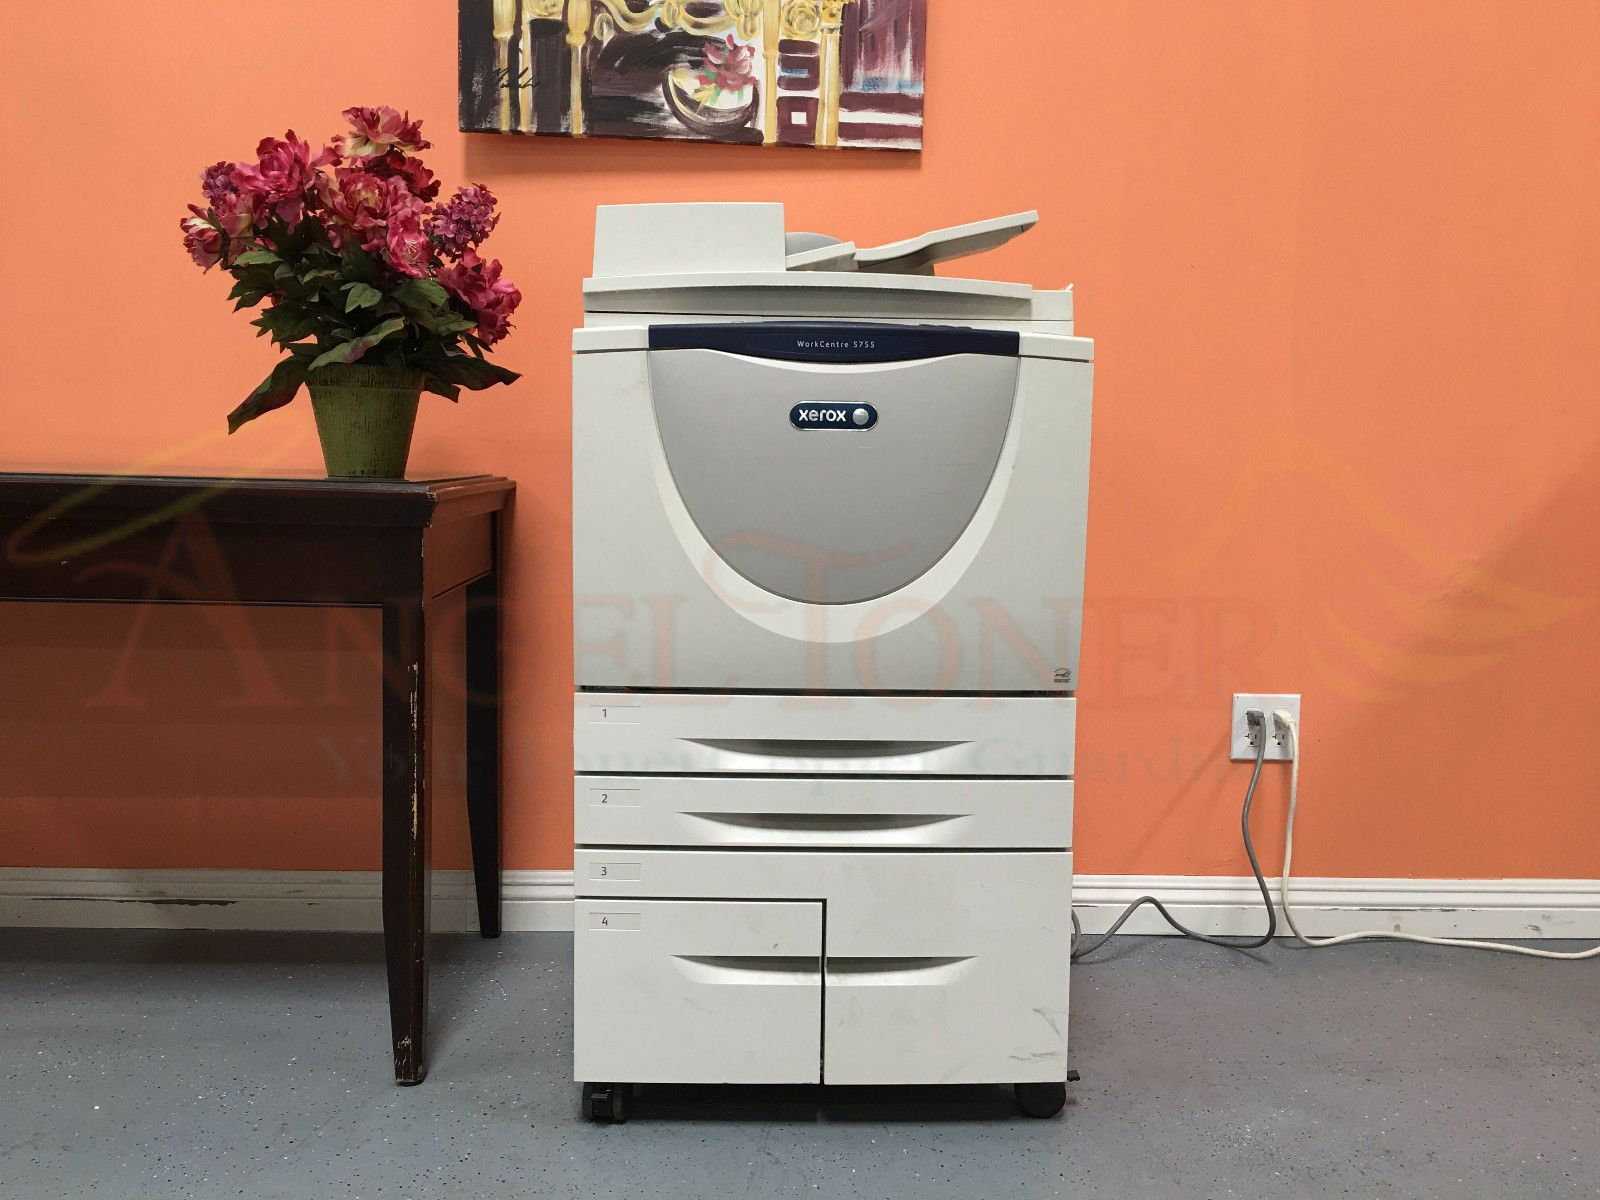 Pin On Office Copiers And Supplies